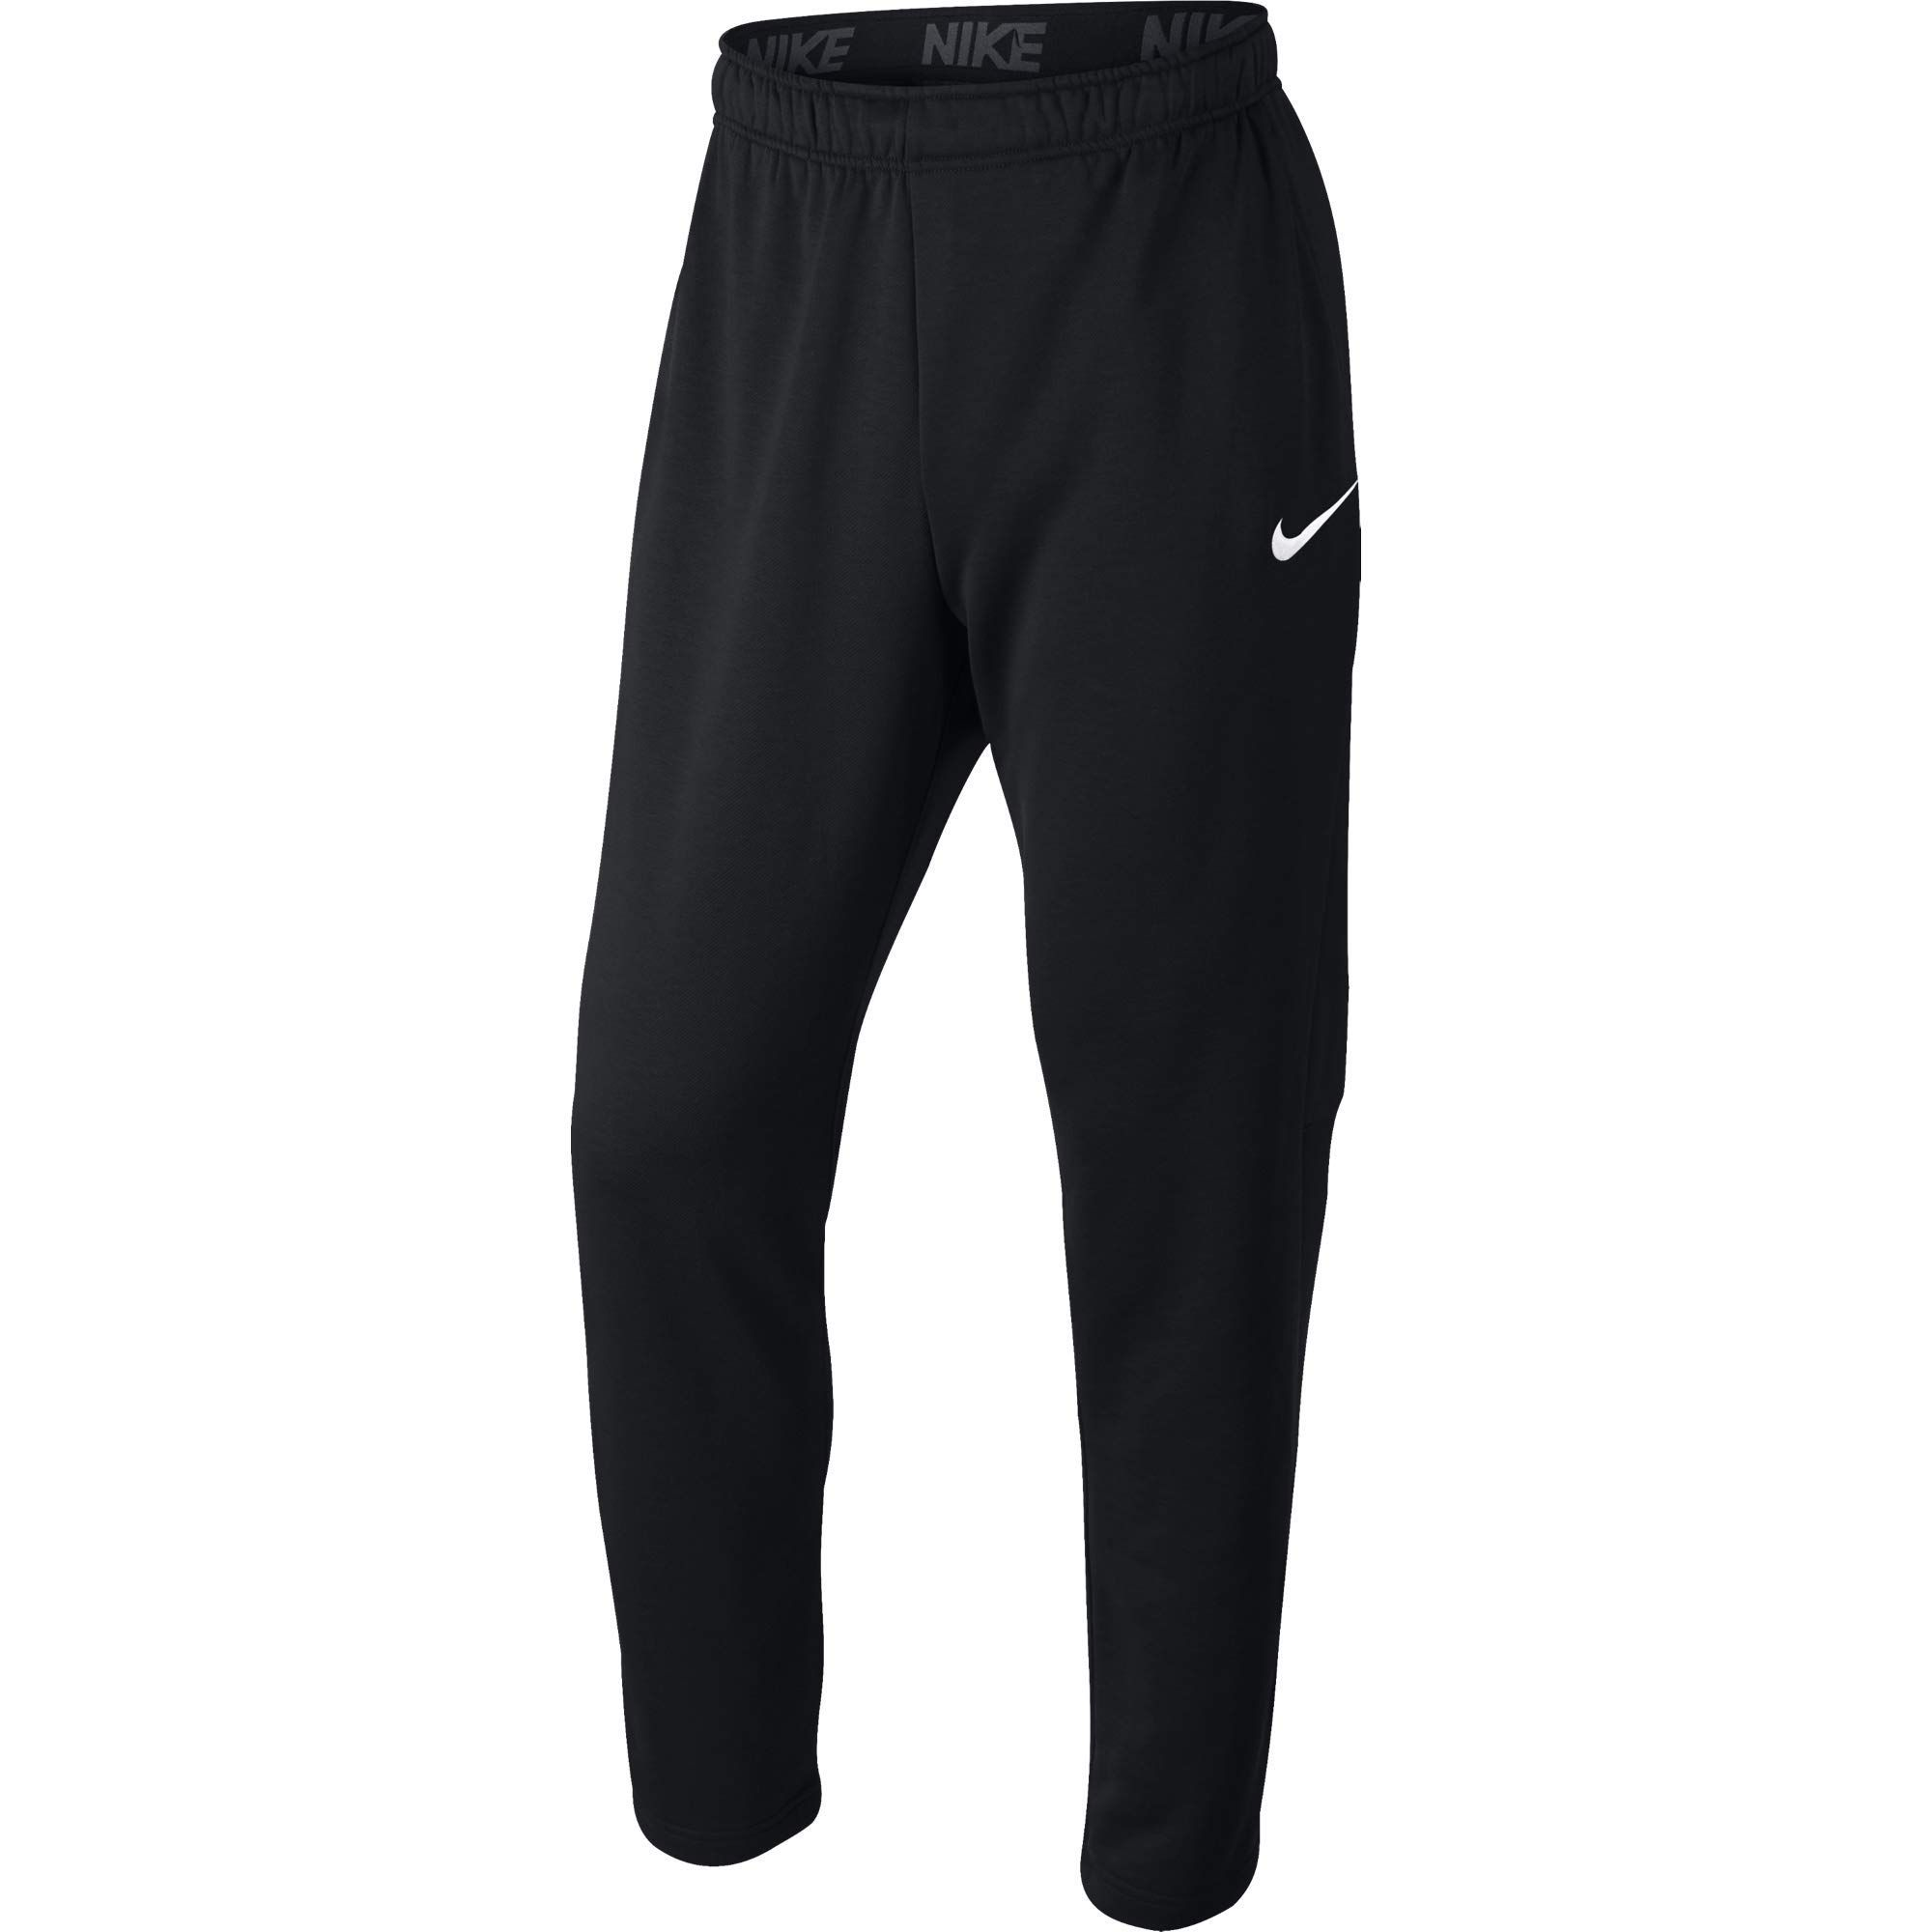 Nike Mens Dry Fleece Training Pants (With images) | Nike men